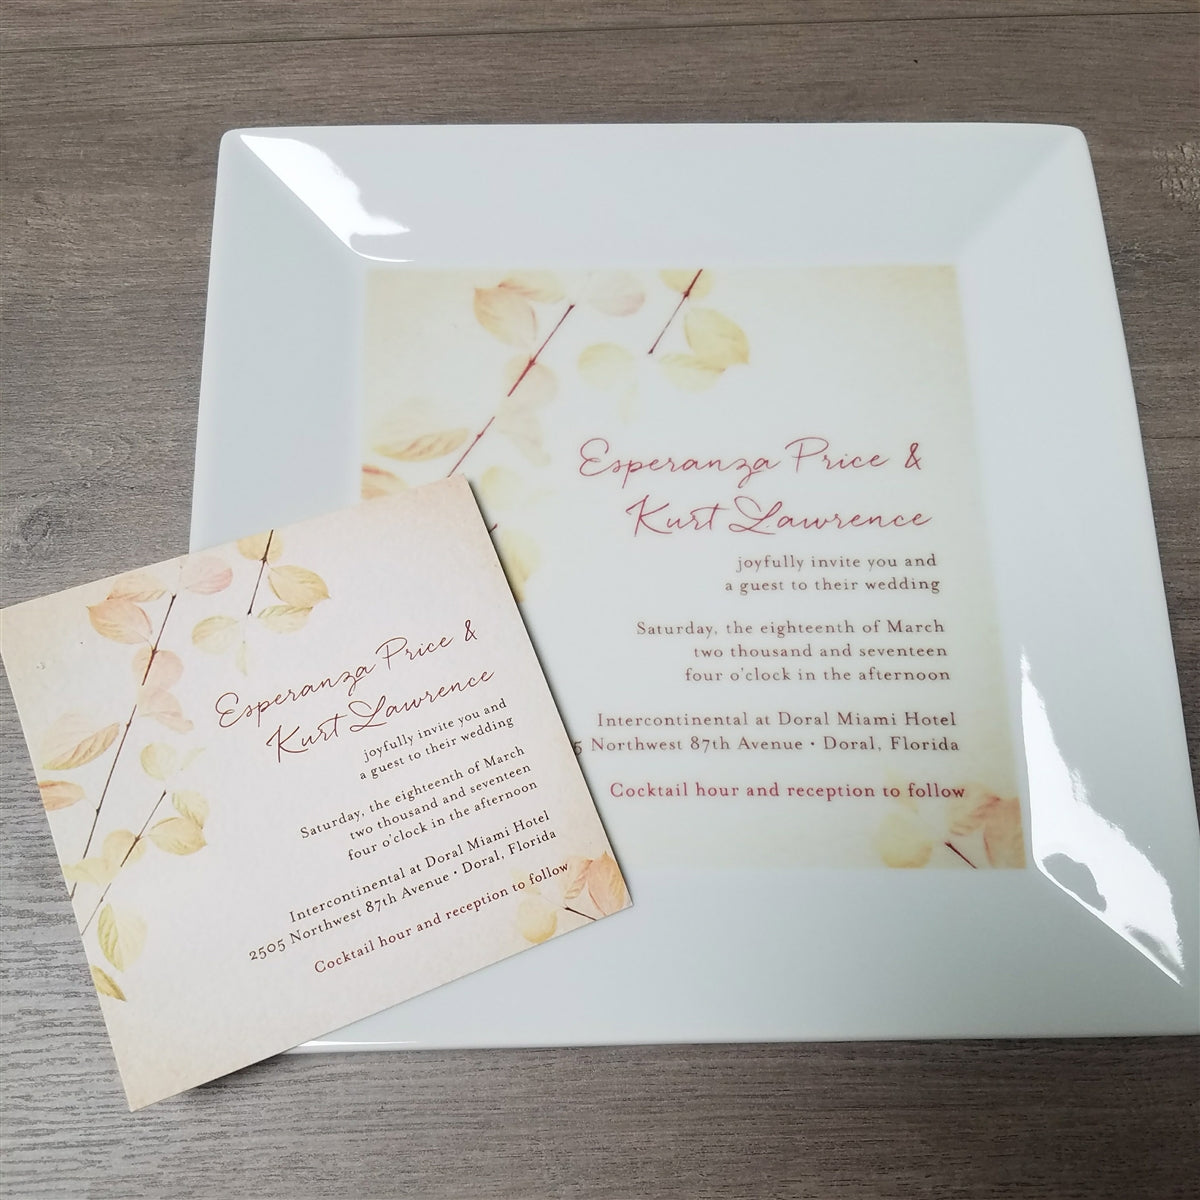 Custom Wedding Invitation Square Platter